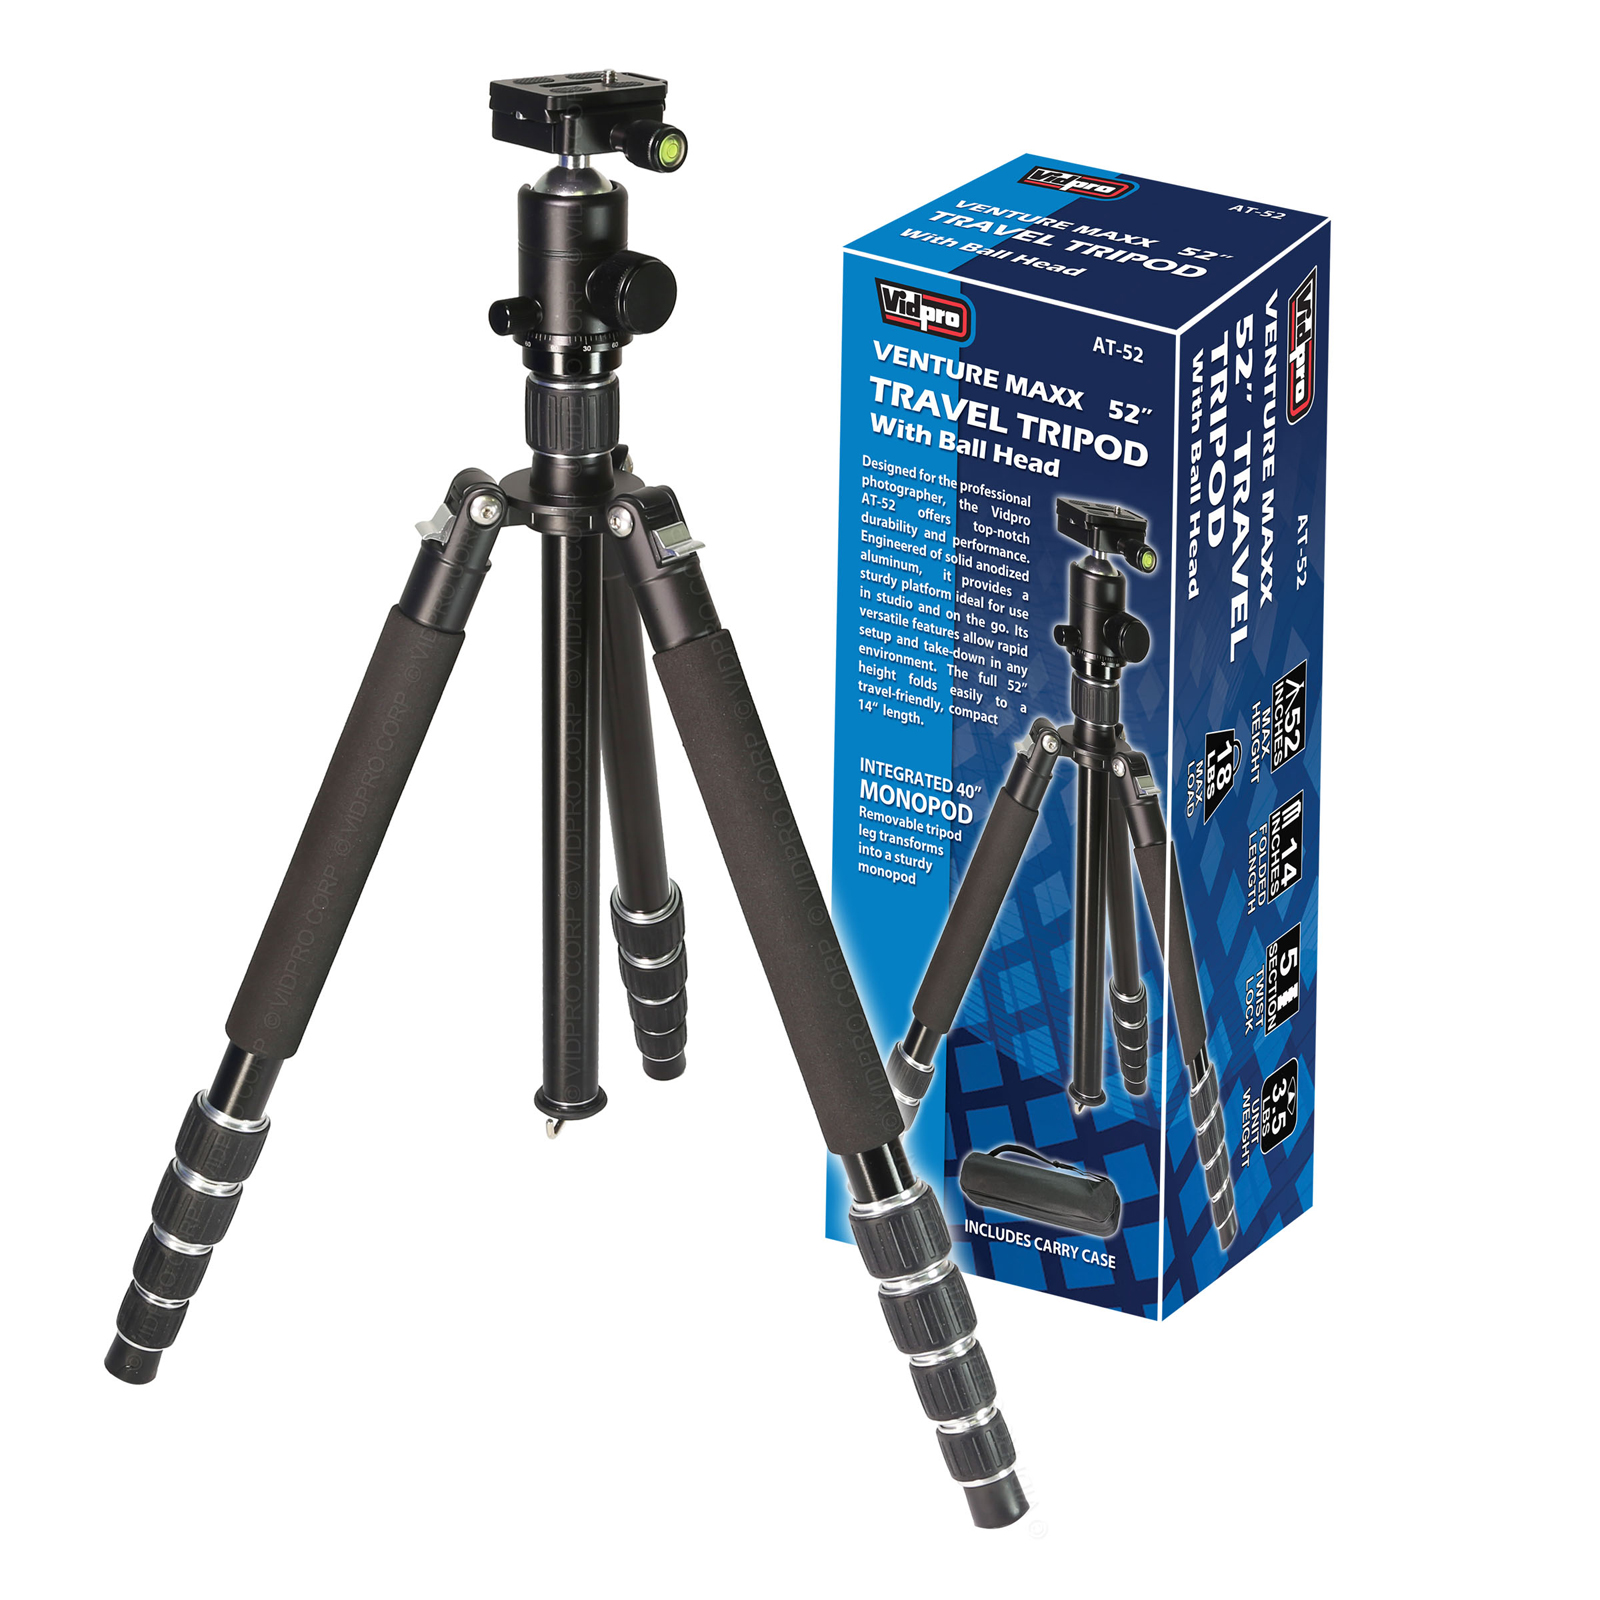 "Vidpro AT-52 Venture Maxx 52"" Professional Aluminum Travel Tripod with Ball Head & Case"